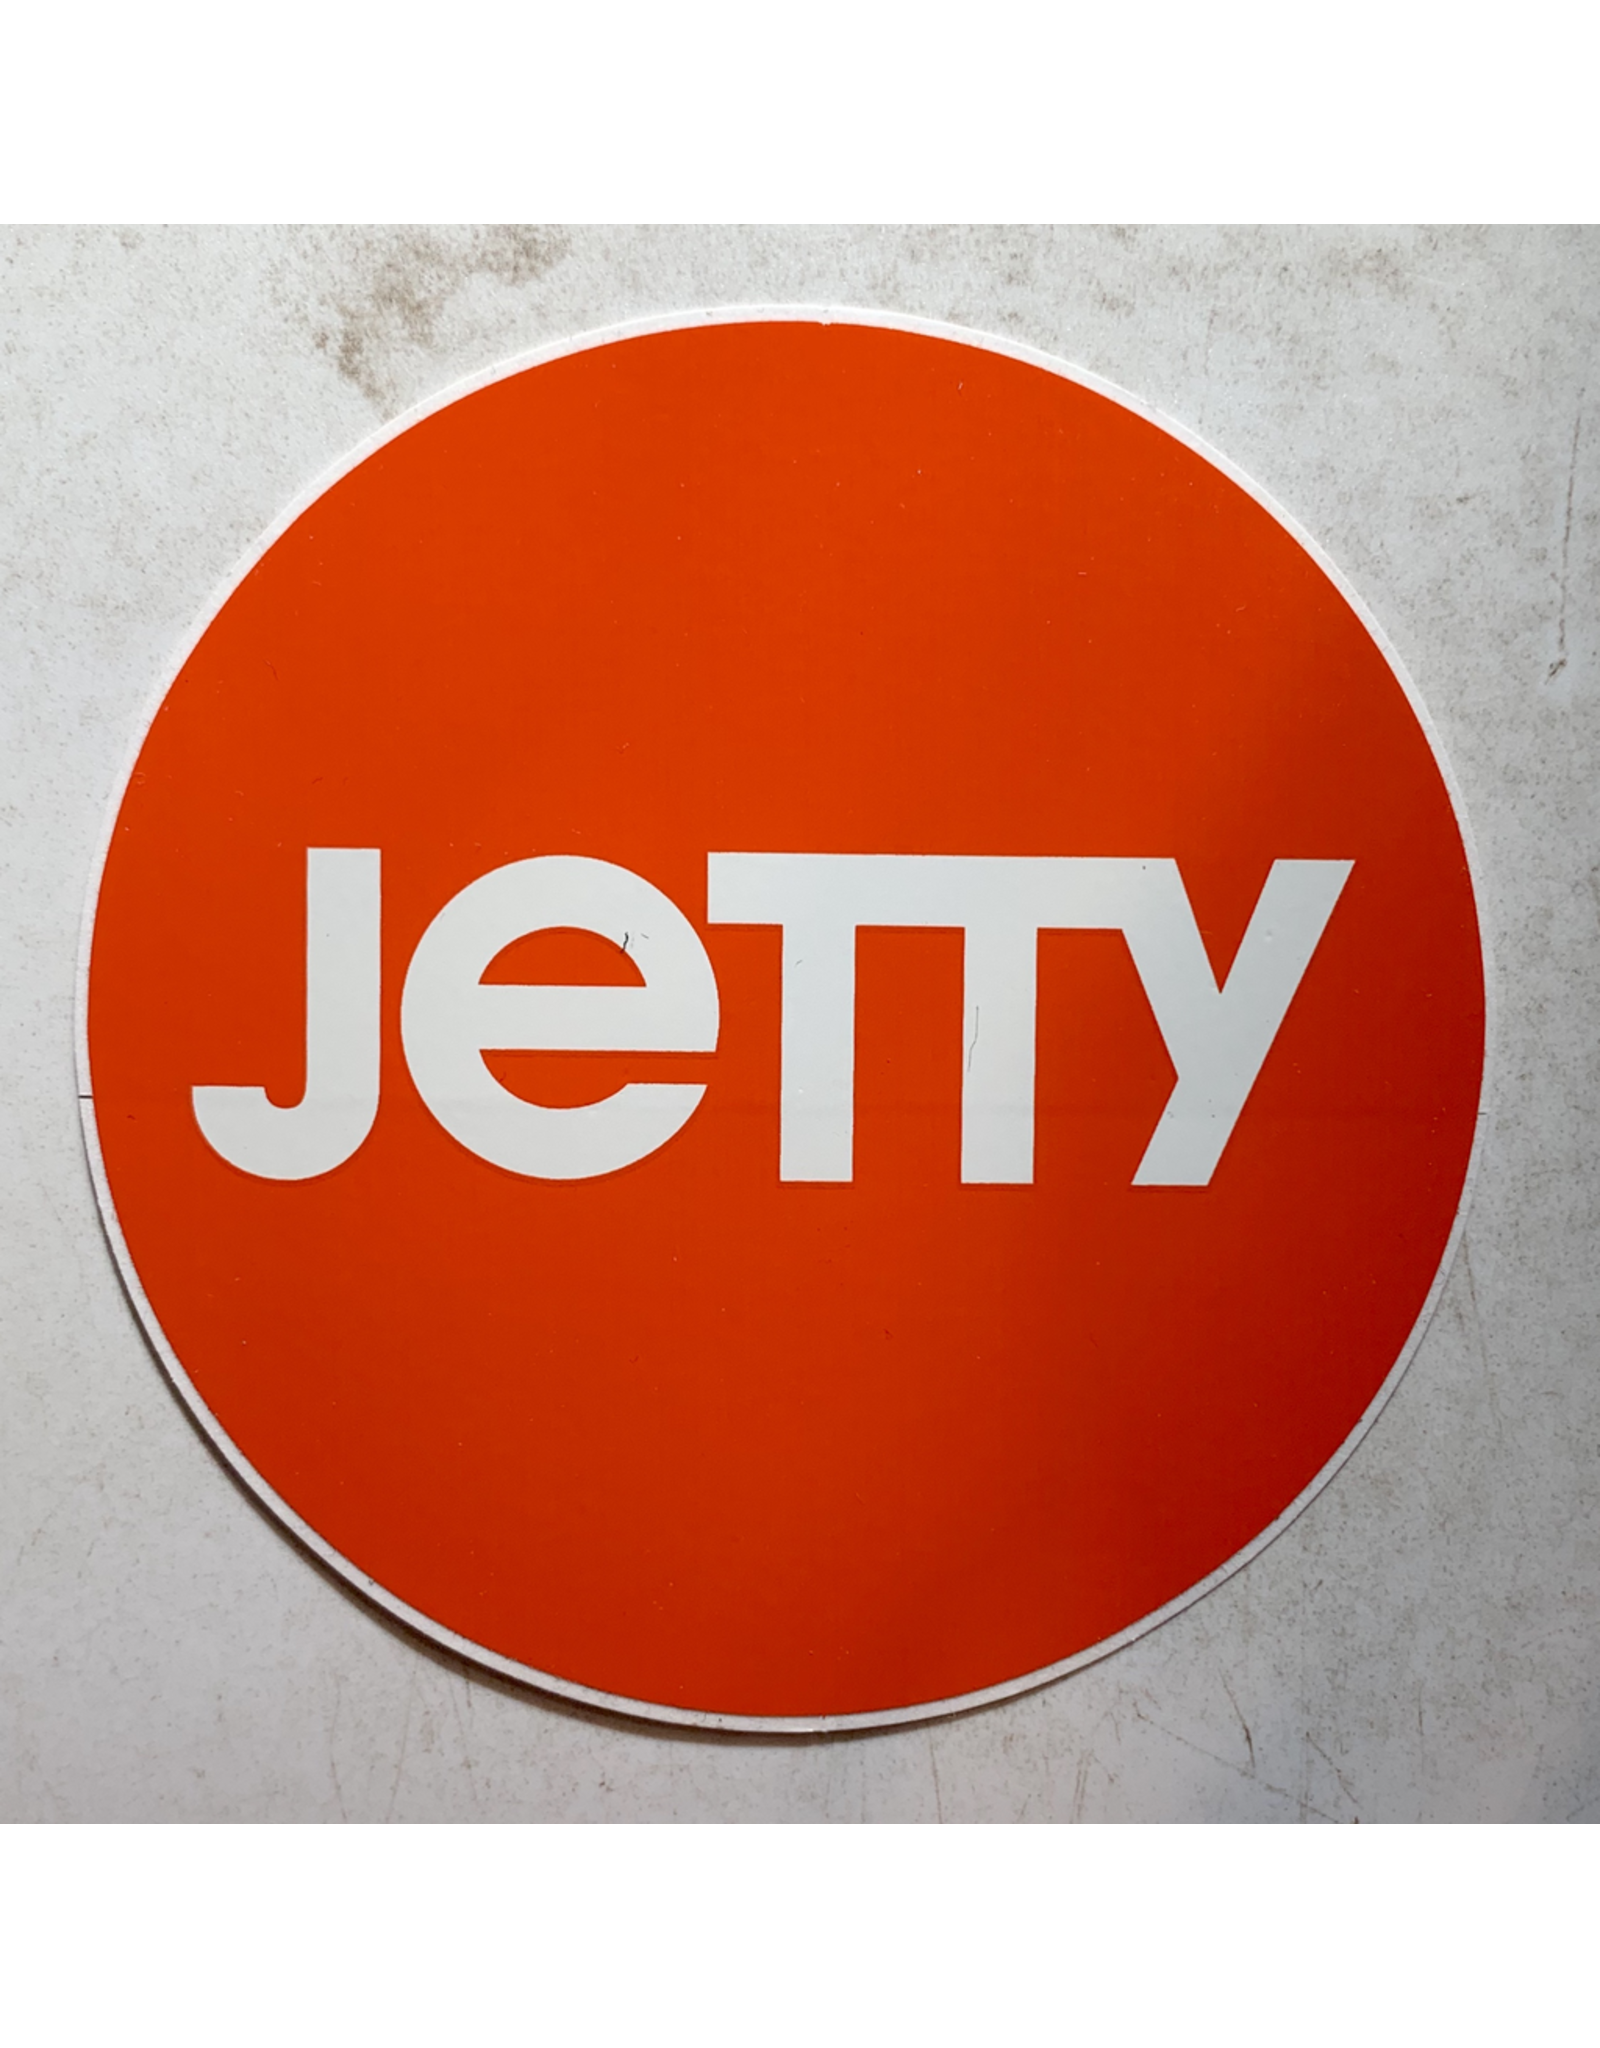 JETTY CIRCLE STICKER (ORANGE)